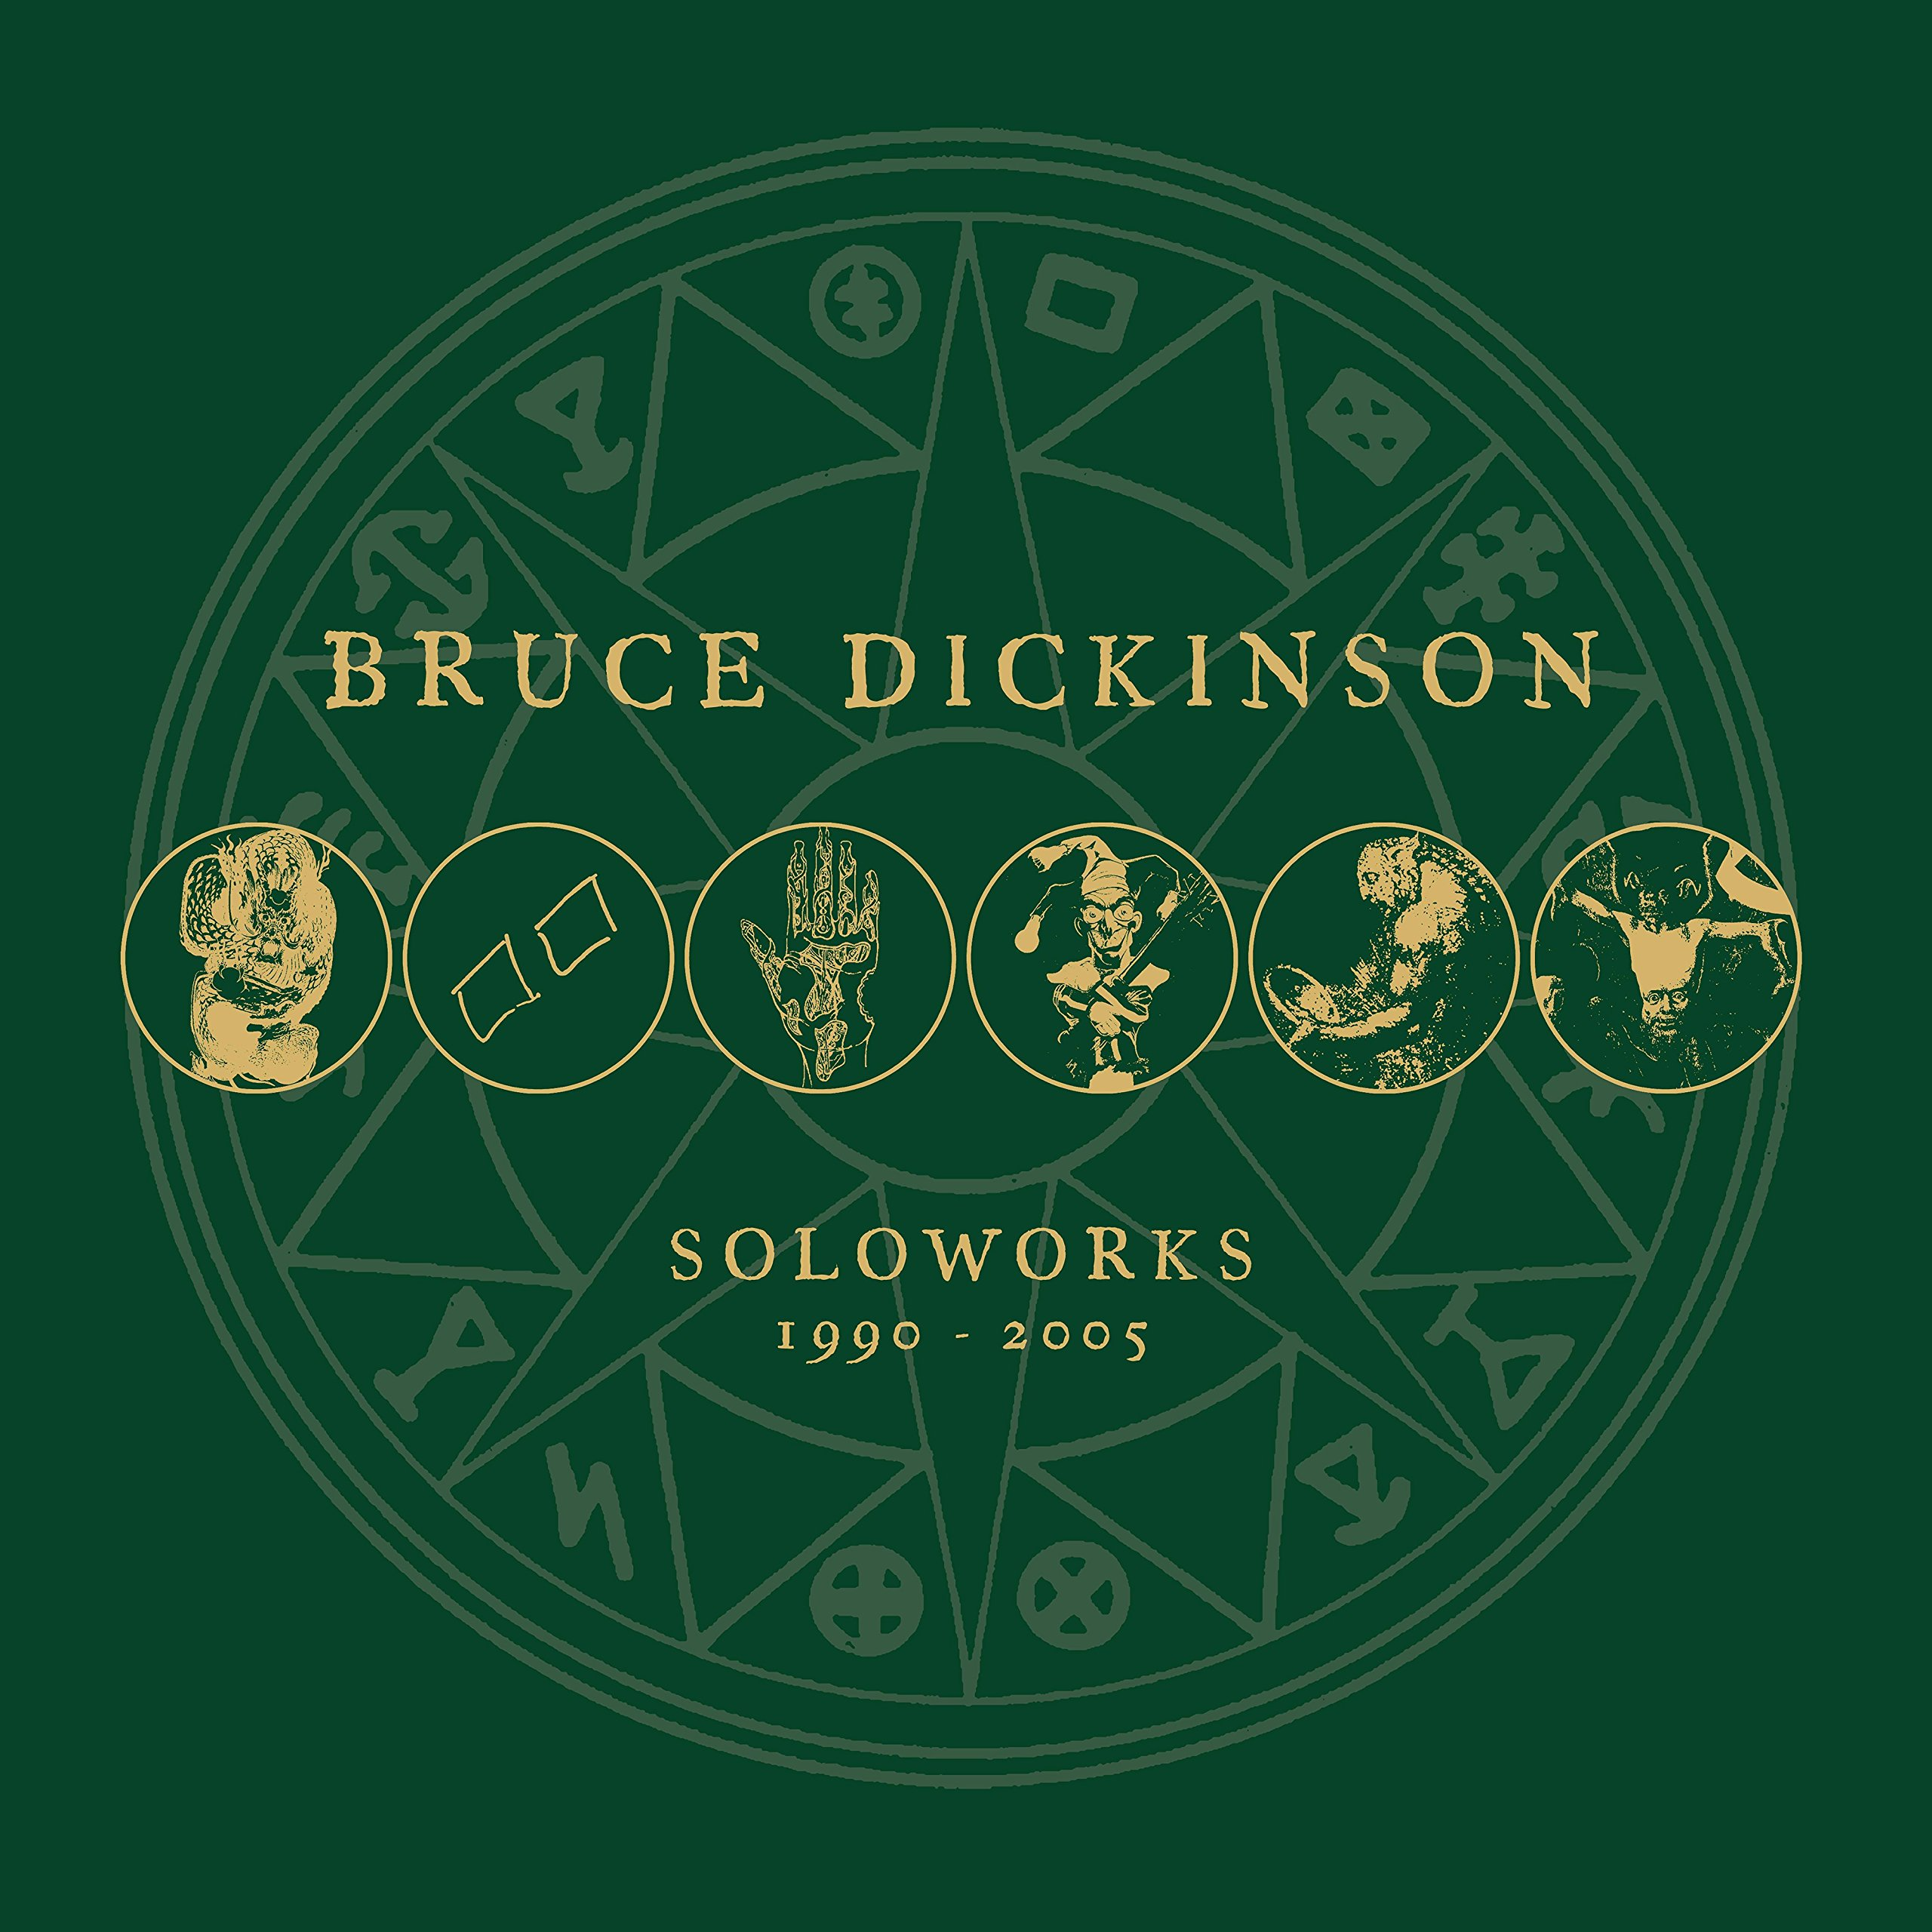 Bruce Dickinson - Soloworks (9-LP Box Set) by Sanctuary Records